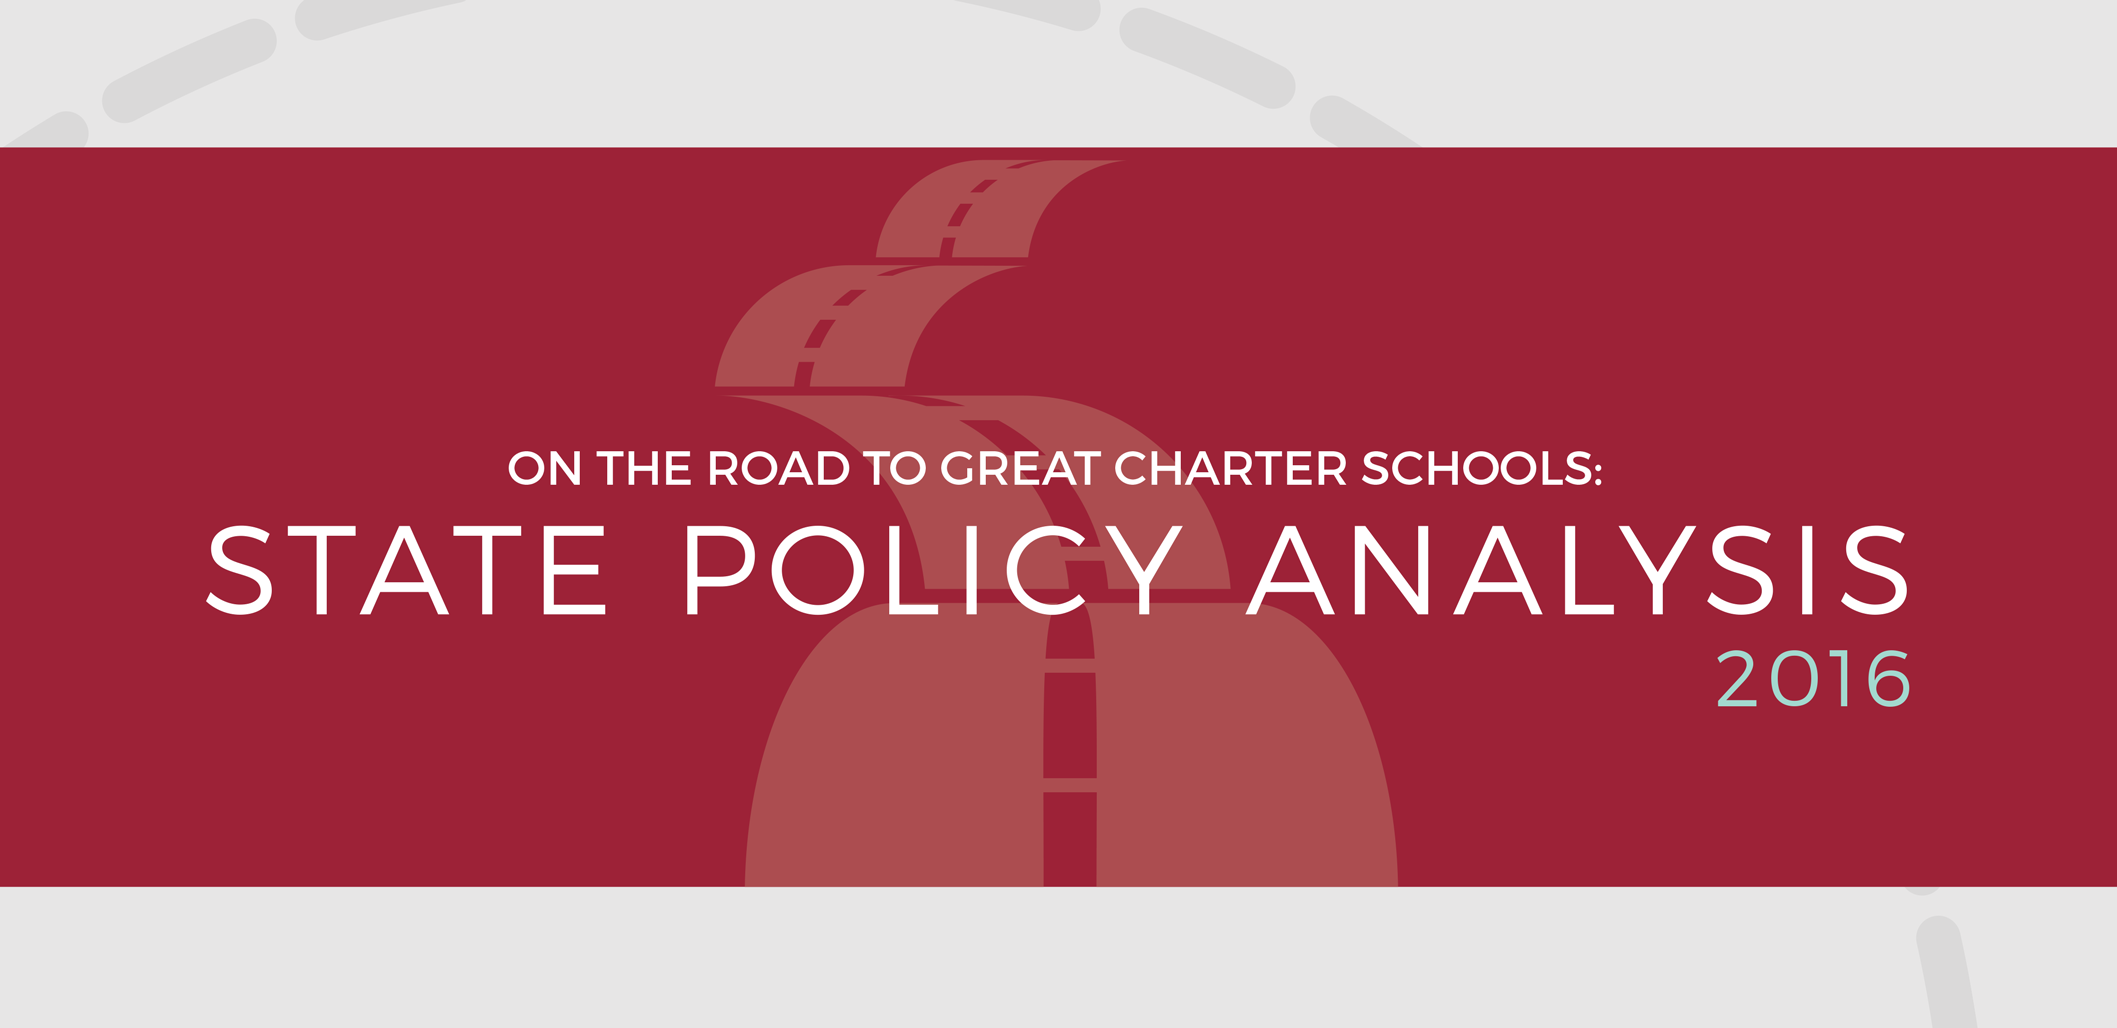 State Policy Analysis 2016 Cover